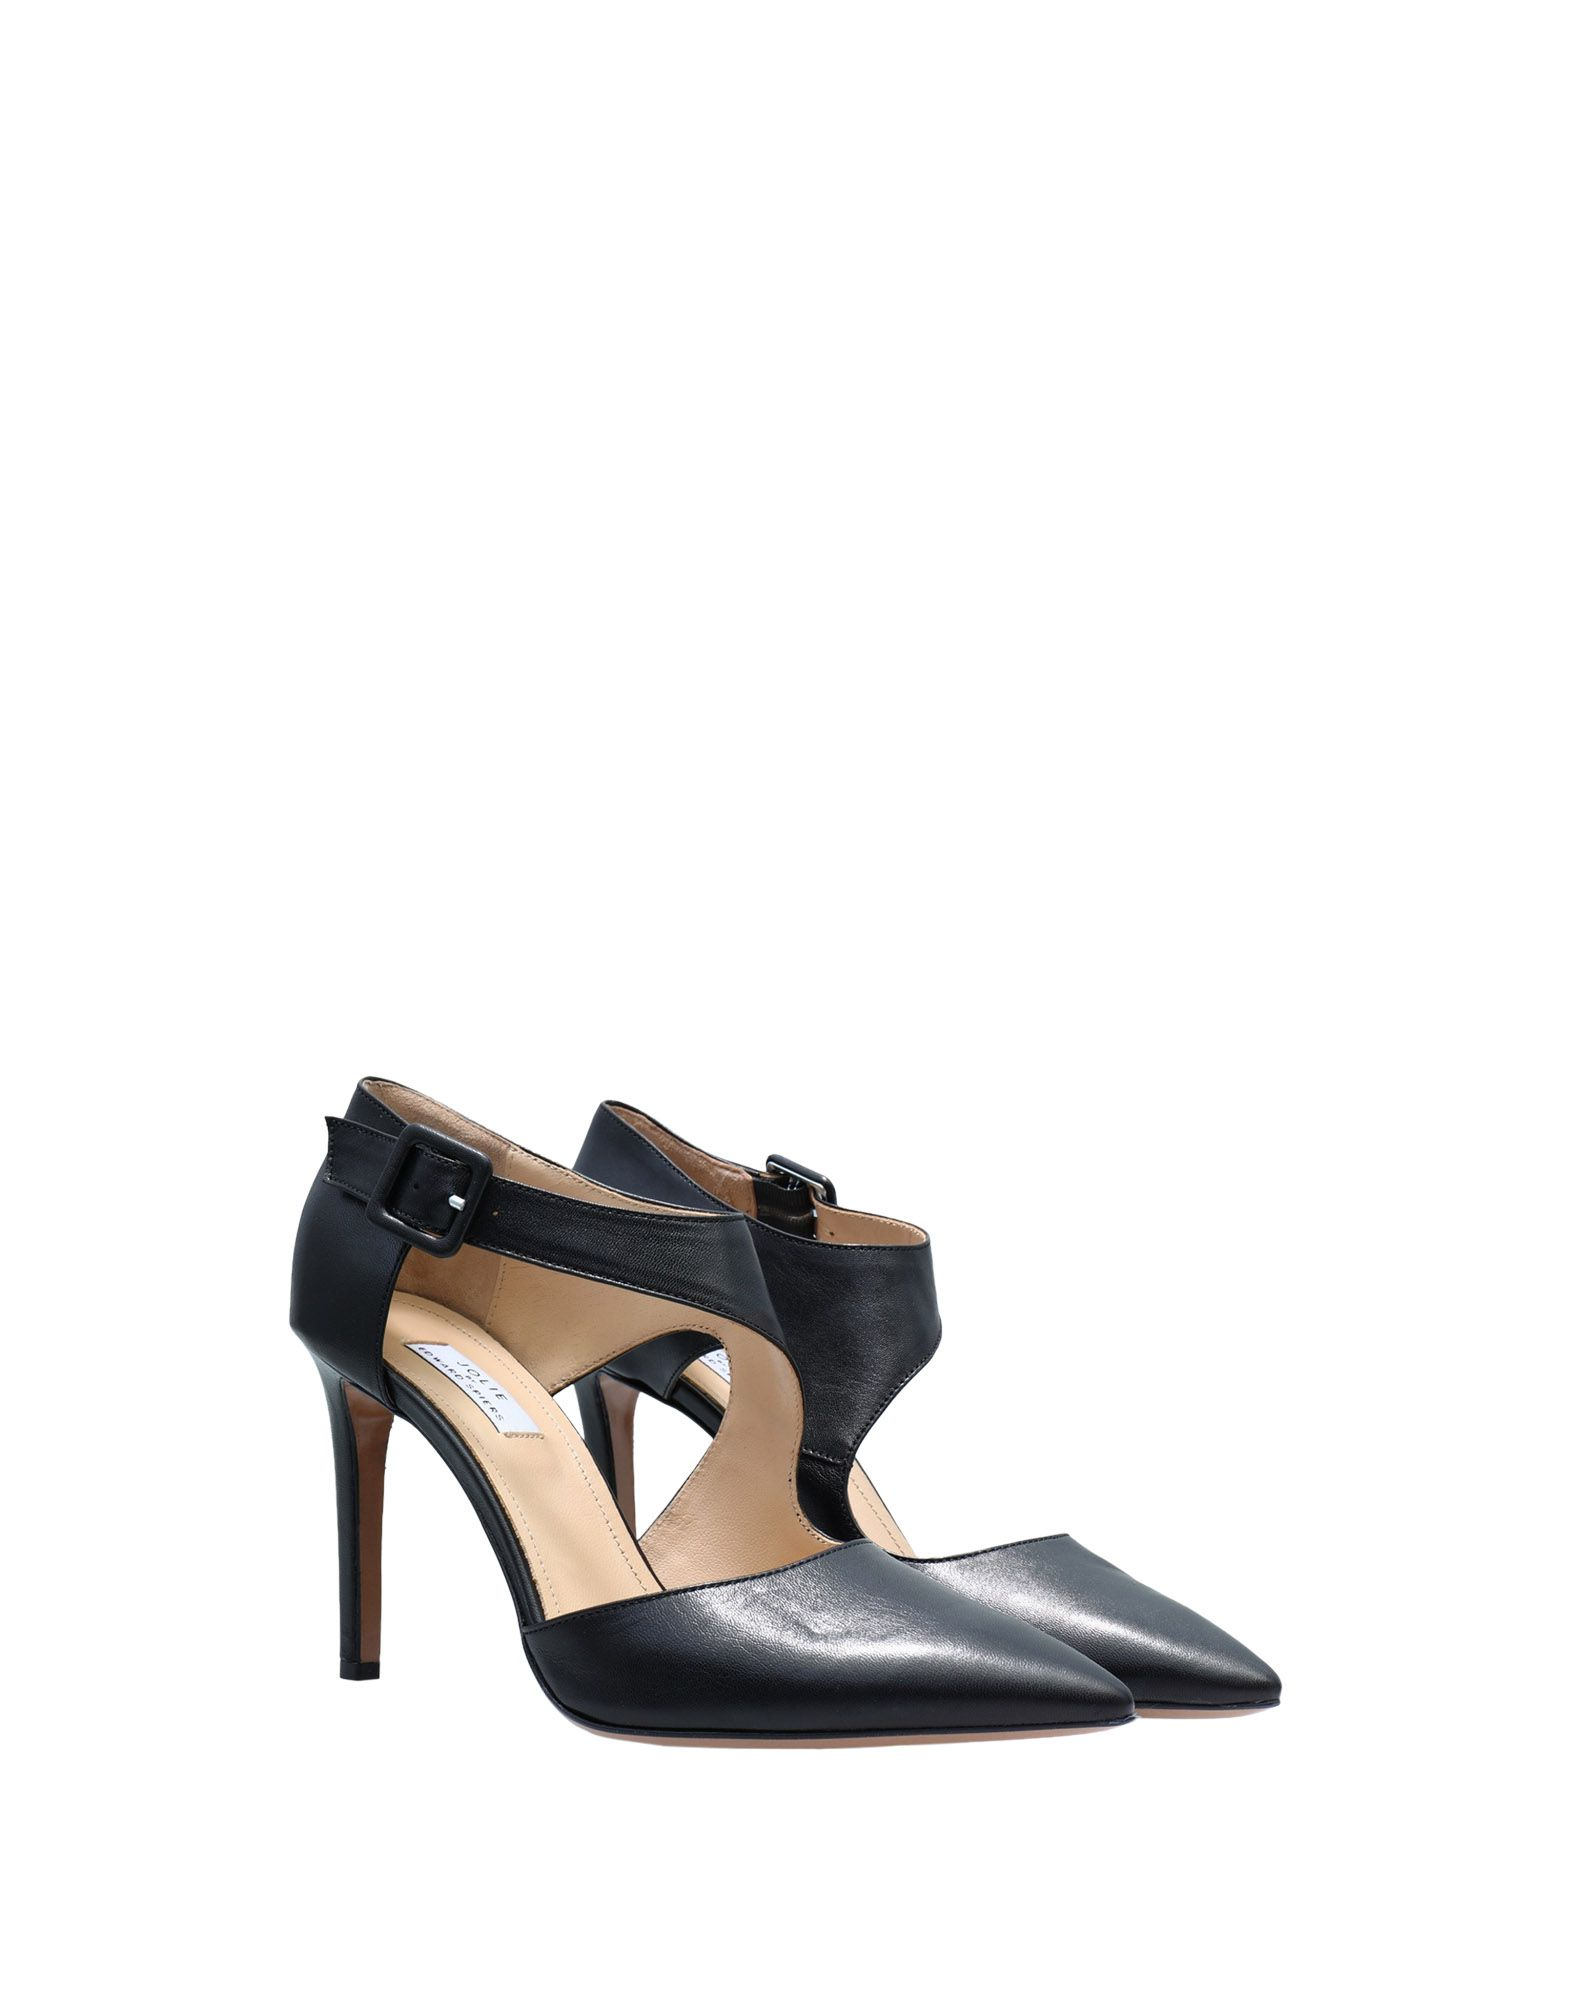 Stilvolle Edward billige Schuhe Jolie By Edward Stilvolle Spiers Pumps Damen  11526570SP 313065